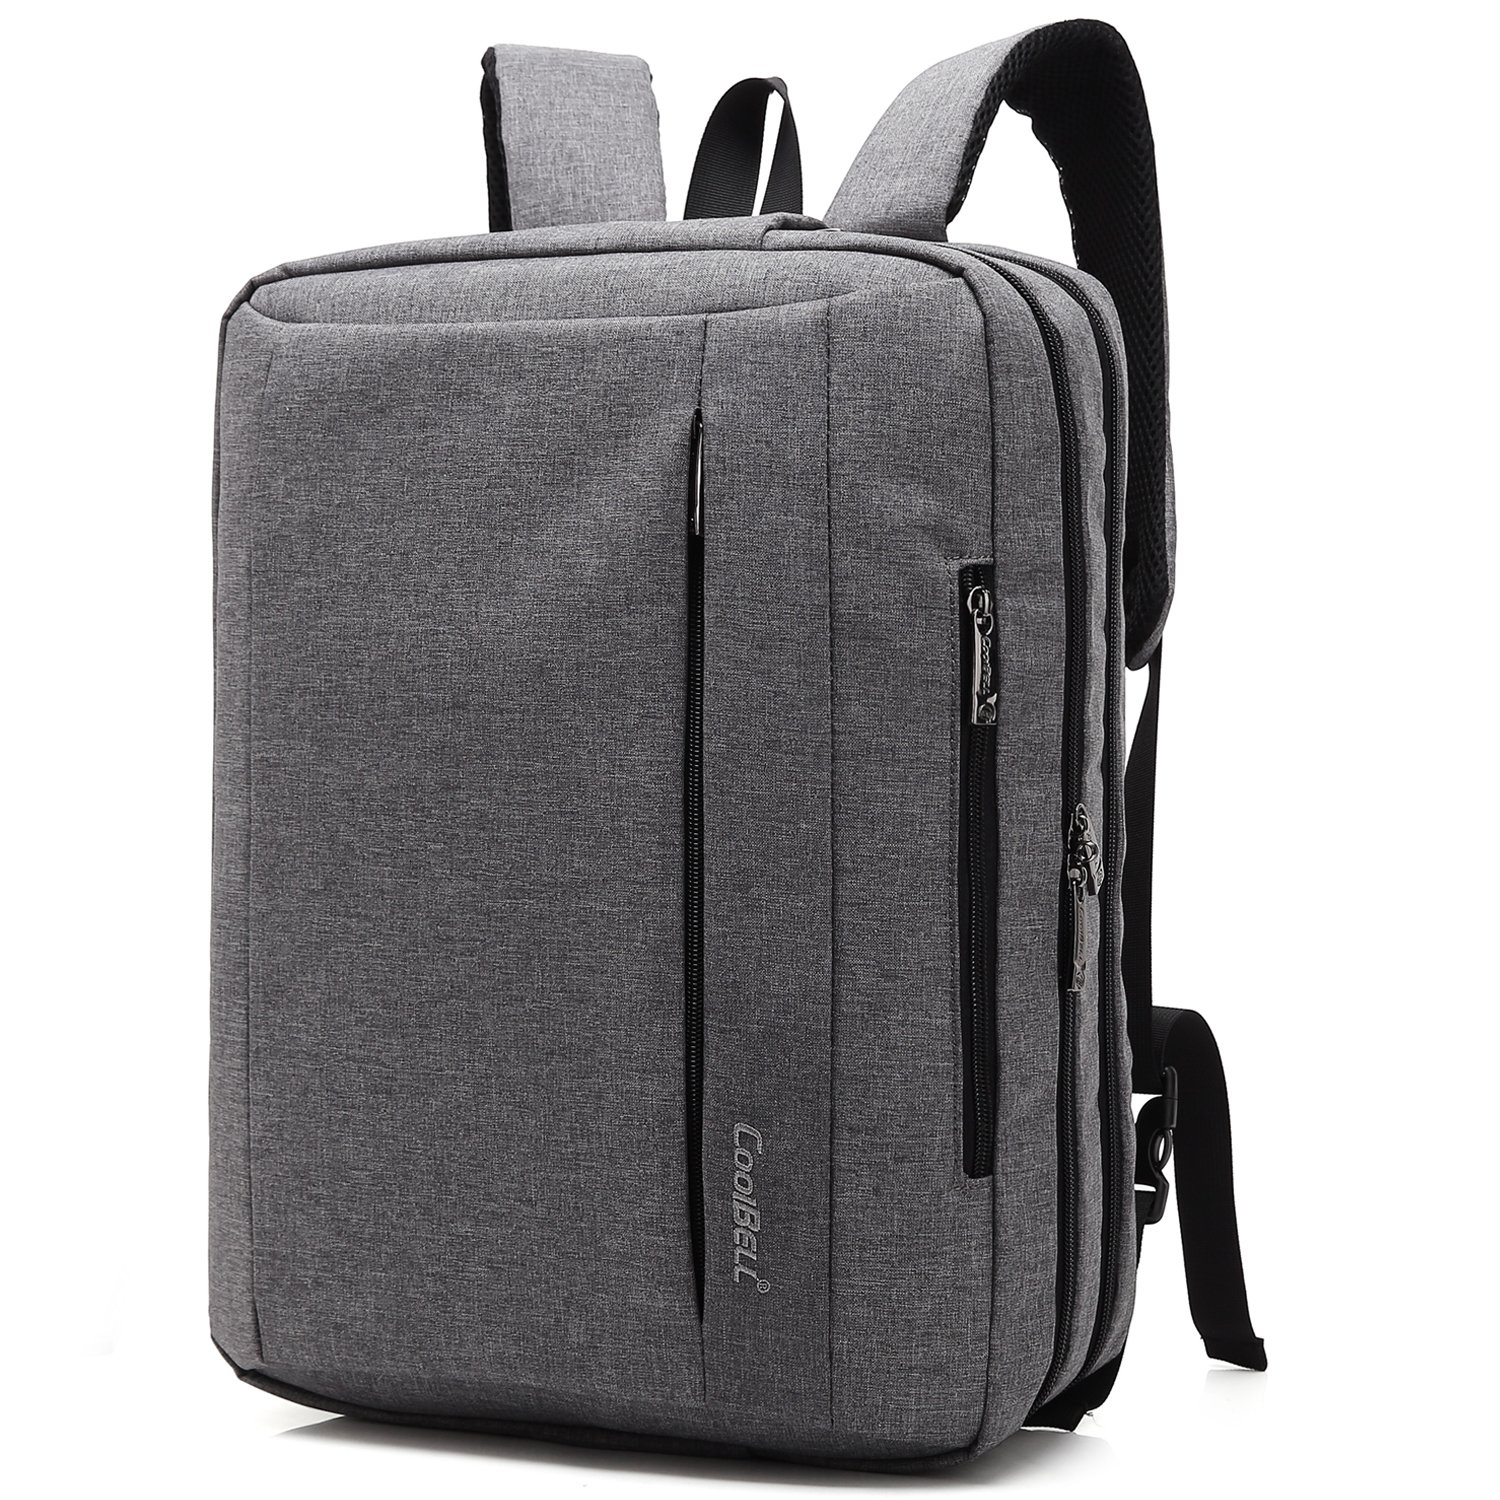 Coolbell 17.3 Inches Convertible Laptop Messenger Bag Shoulder Bag Backpack Oxford Cloth Multi-Functional Briefcase for Laptop/MacBook / Tablet (Black) 6454456